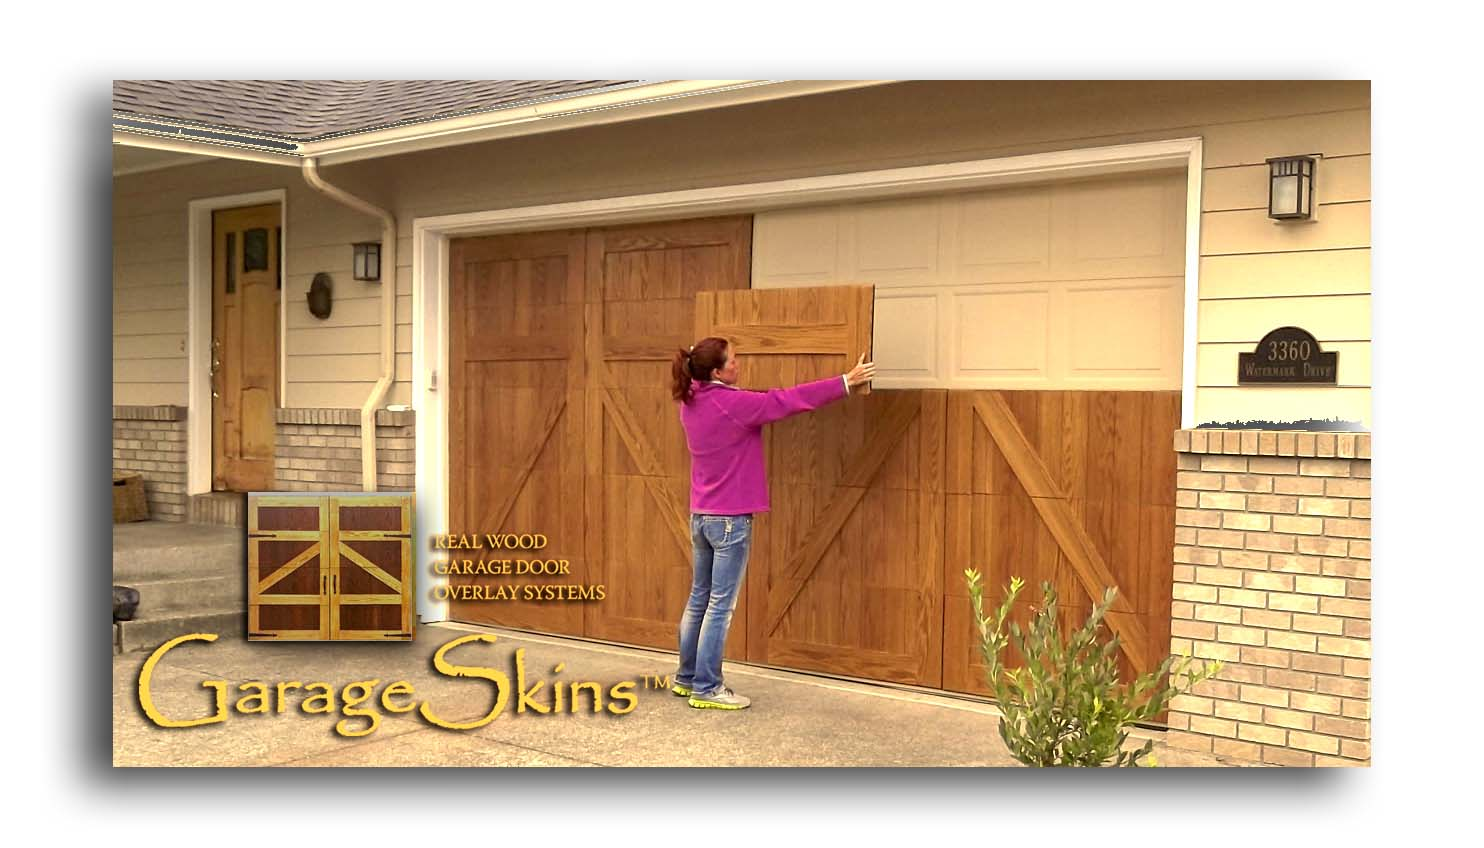 What Are GarageSkins™ Real Wood Garage Door Overlays?